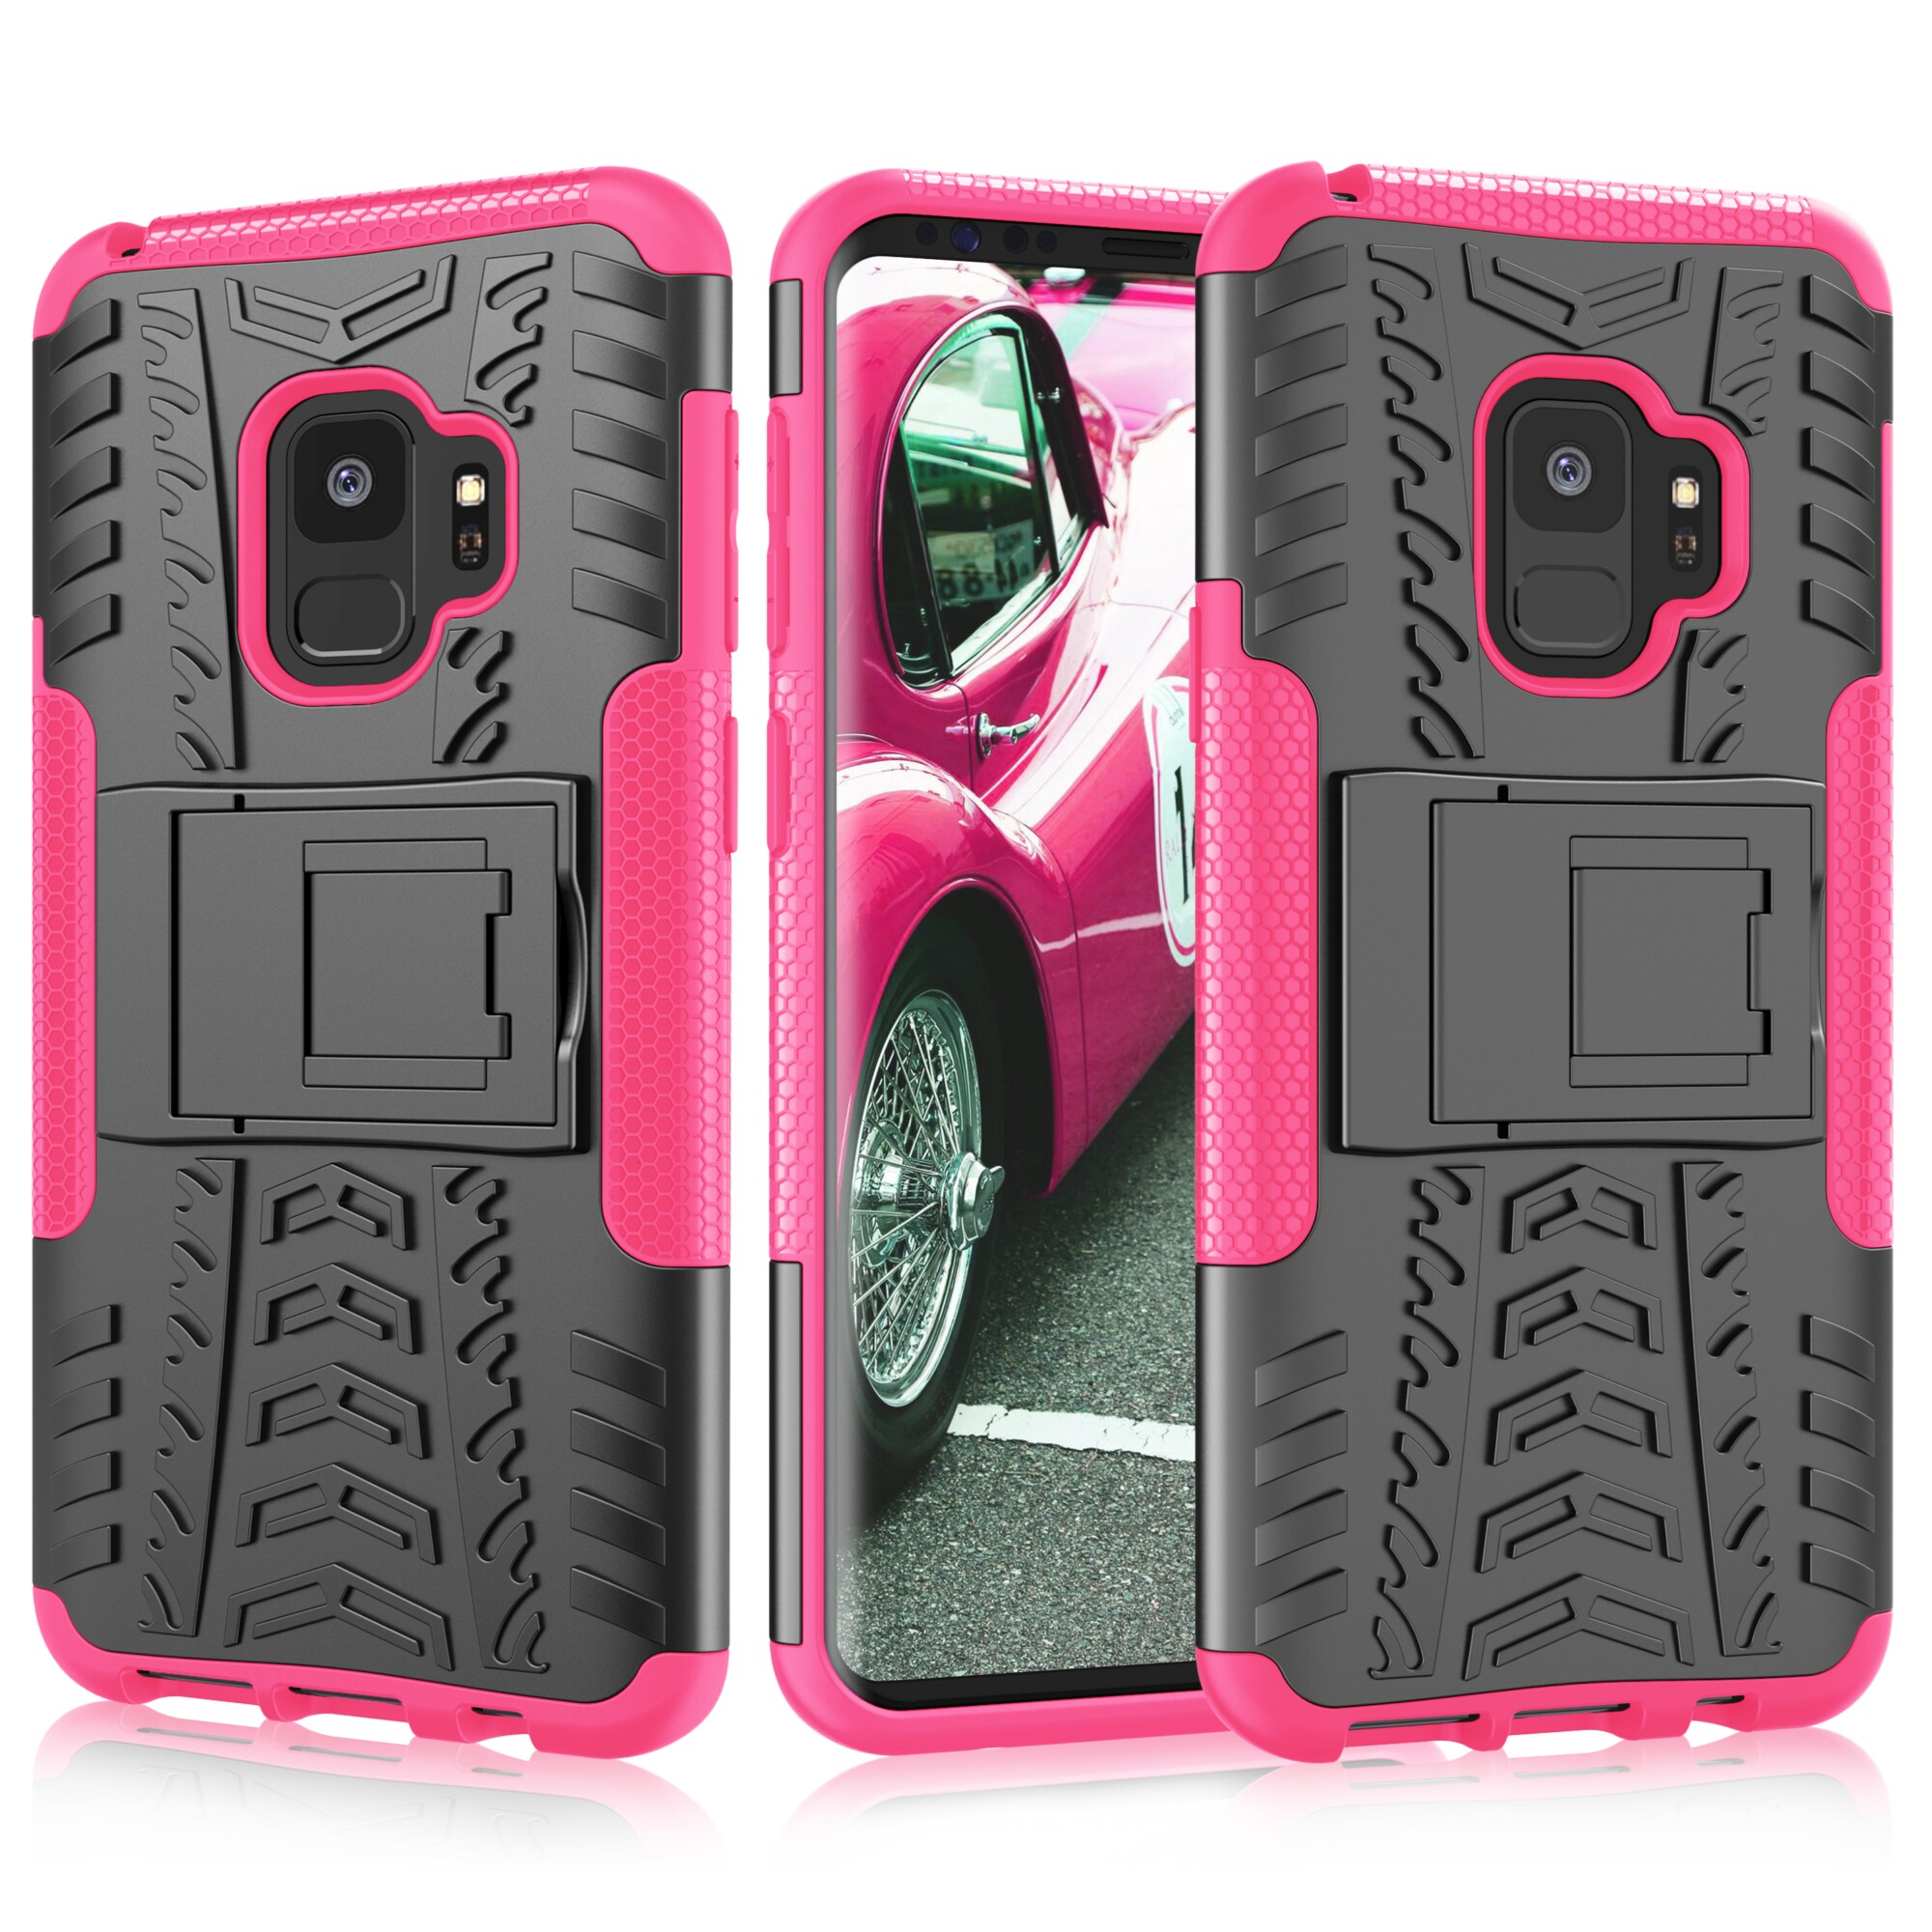 Galaxy S9 Case, Samsung S9 Kickstand, Galaxy S9 Cover, Njjex [Built-in Kickstand][Non-slip Design] Hybrid Full-body Rugged [Shock Proof] Protection Cover For Samsung Galaxy S9 -Hot Pink